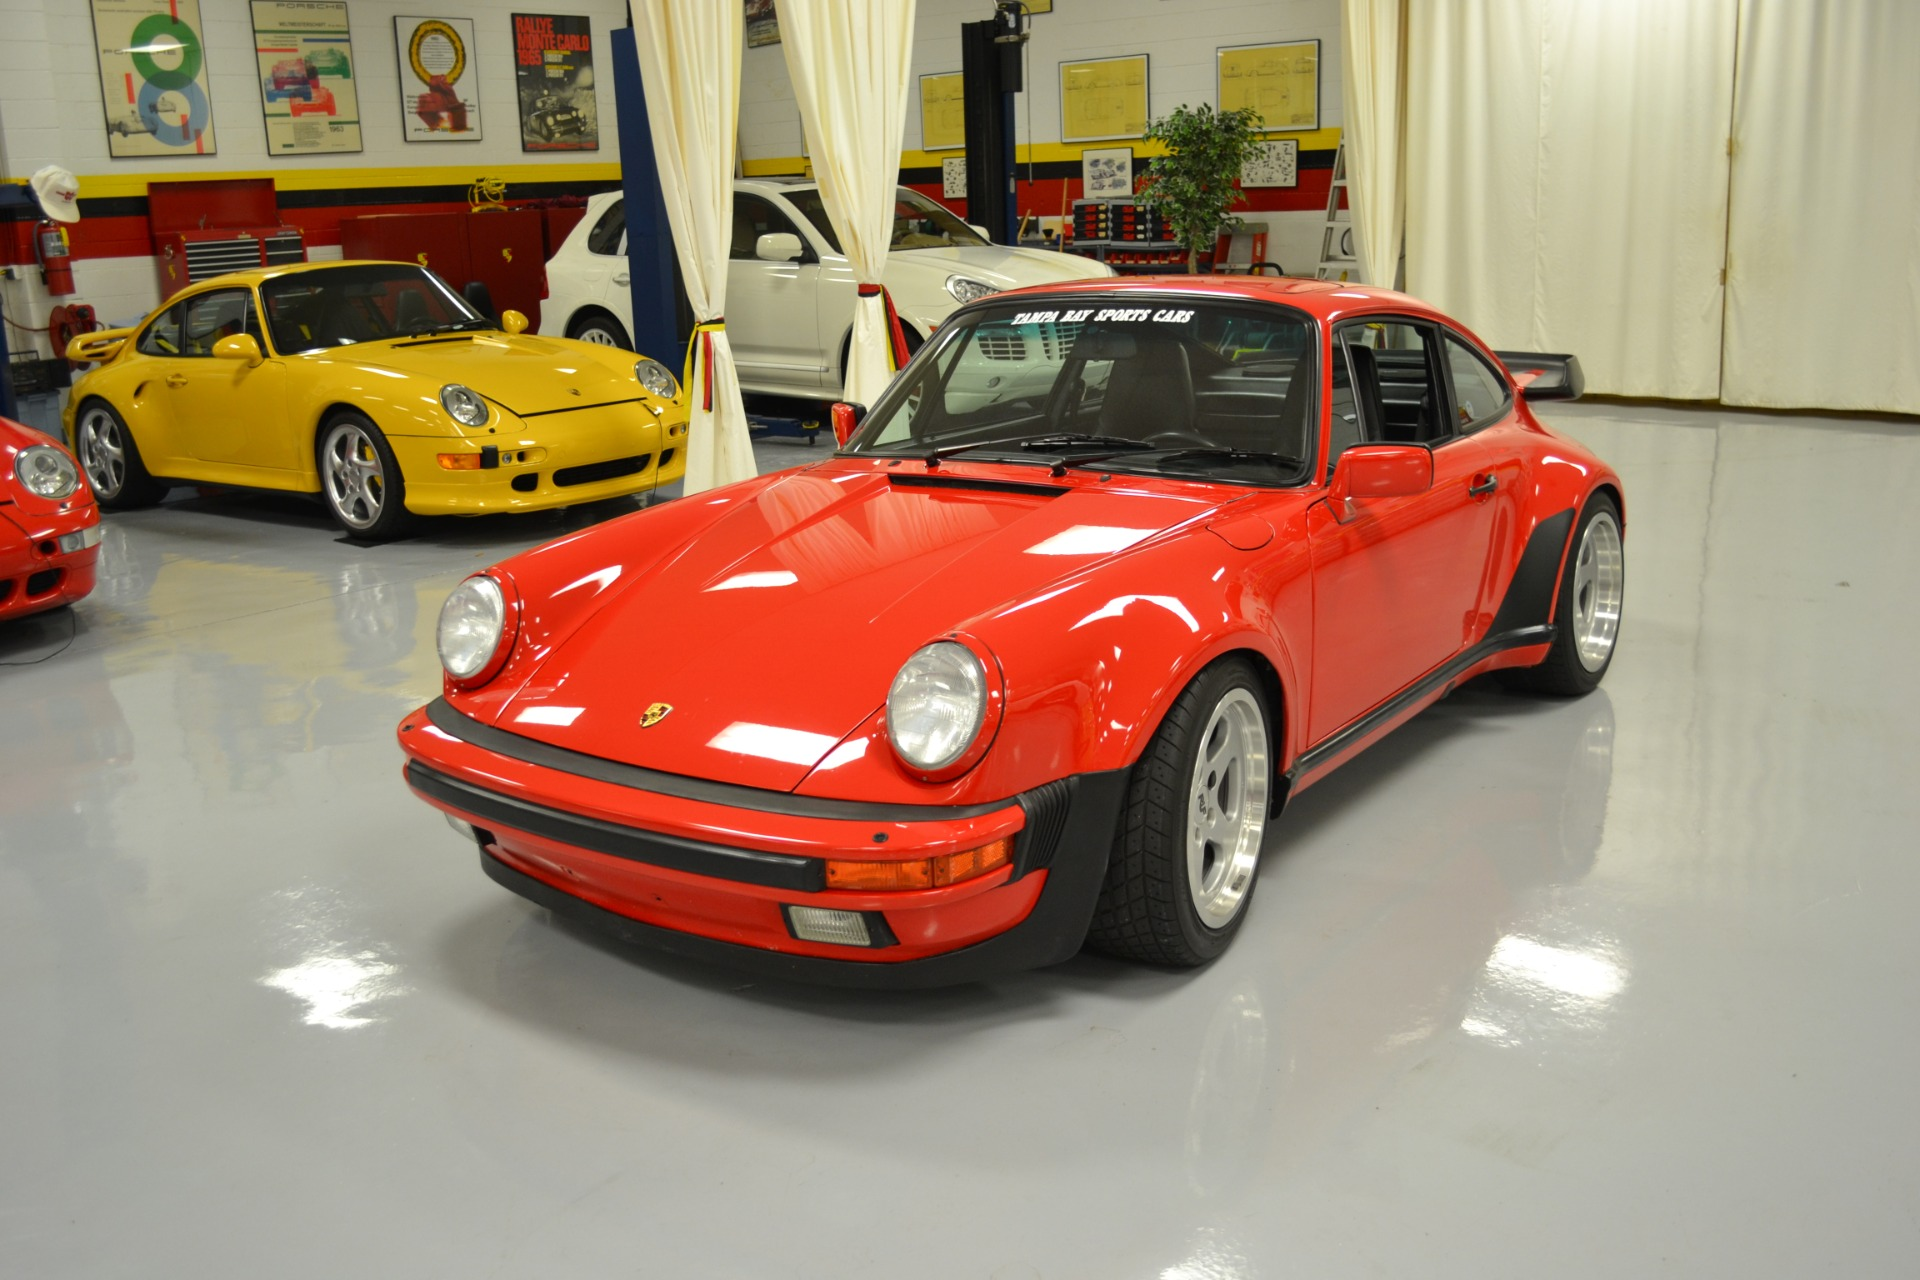 1987 Porsche 911 930 Turbo Carrera Turbo For Sale In Pinellas Park Fl 1131 Tampa Bay Sports Cars